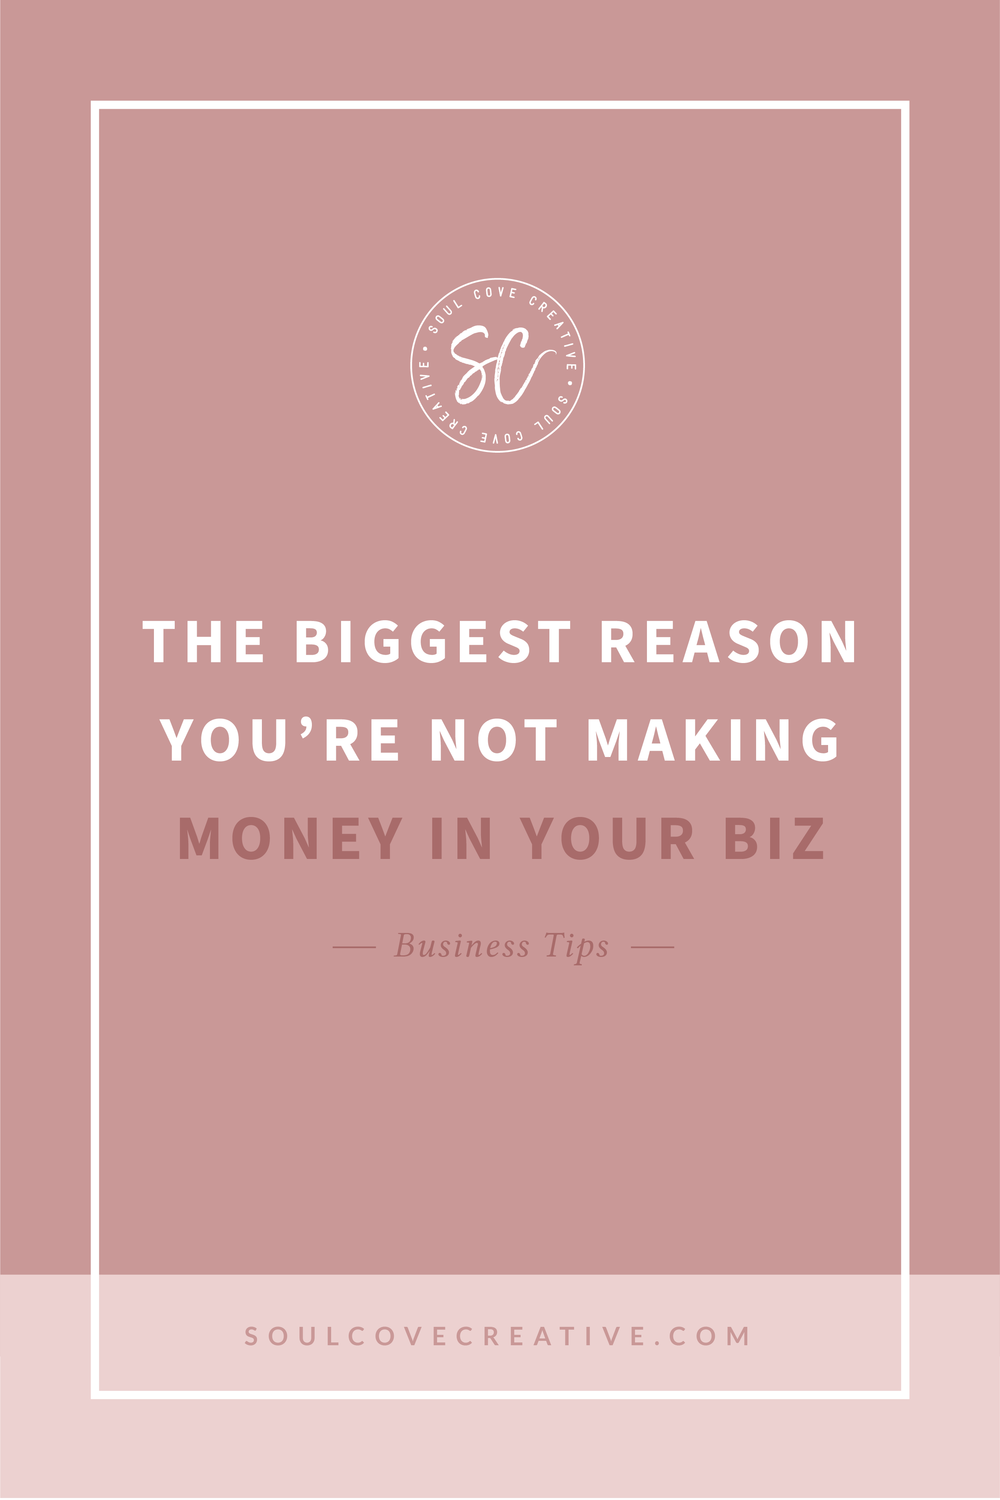 The biggest reason you're not making money in your biz